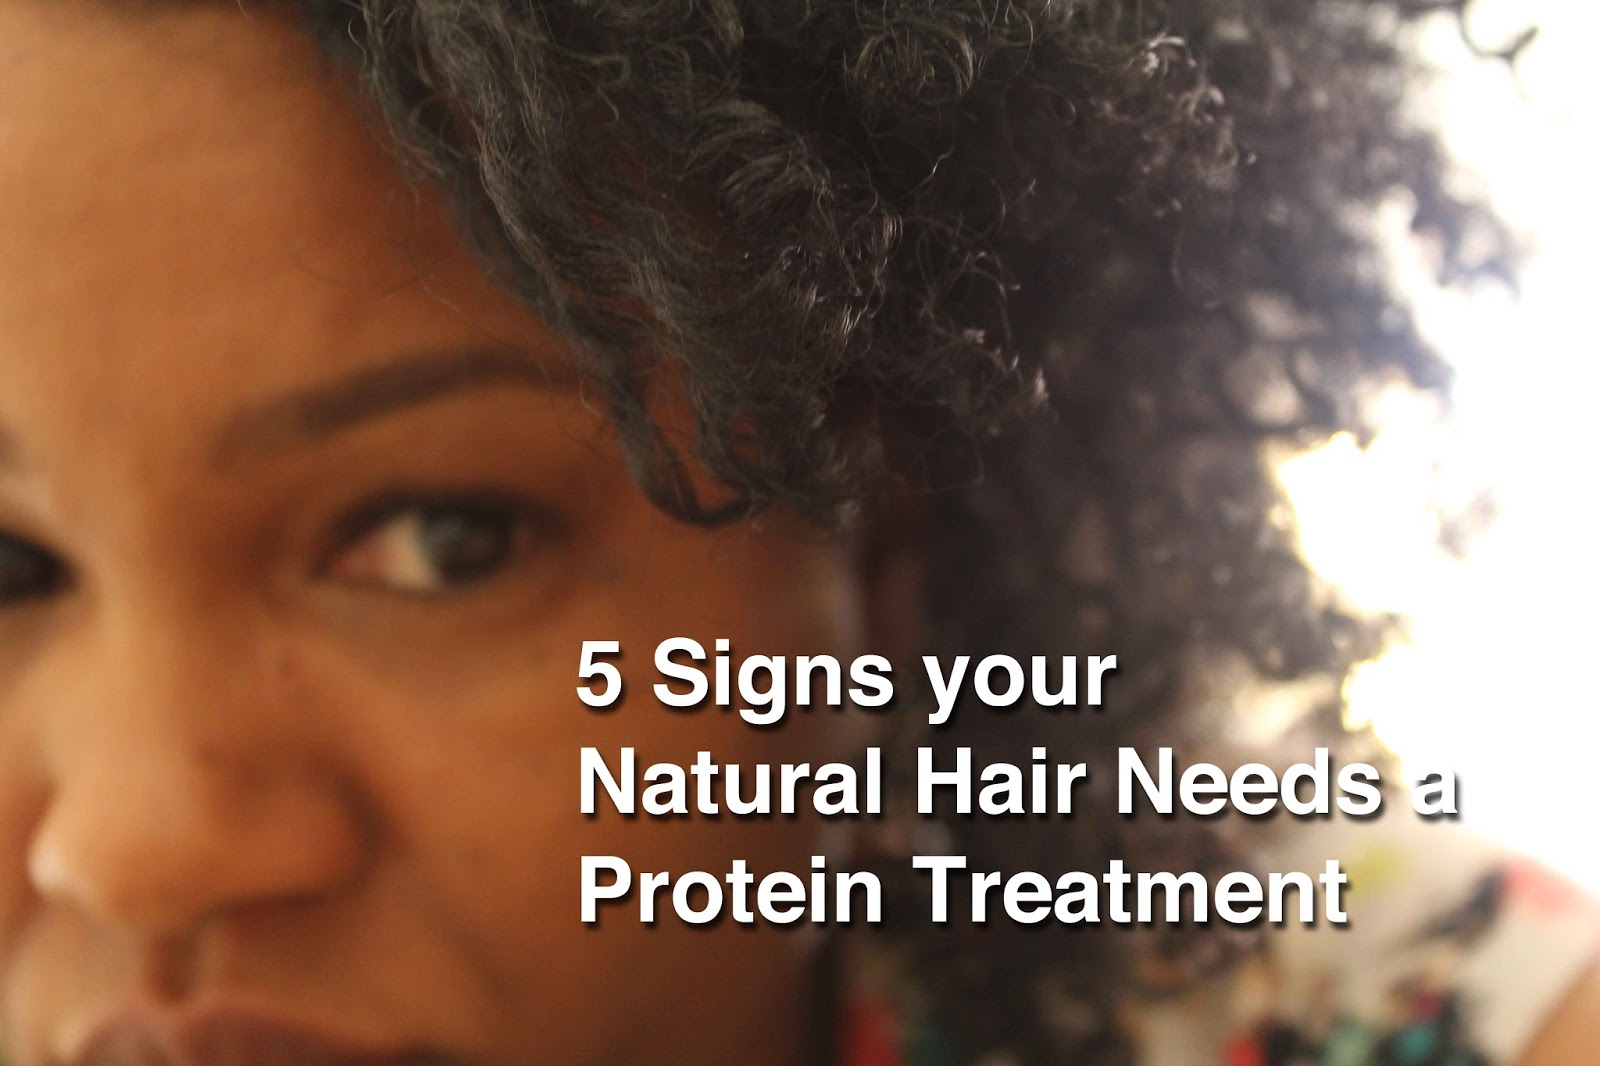 www.curlyincolorado.com natural hair protein treatment